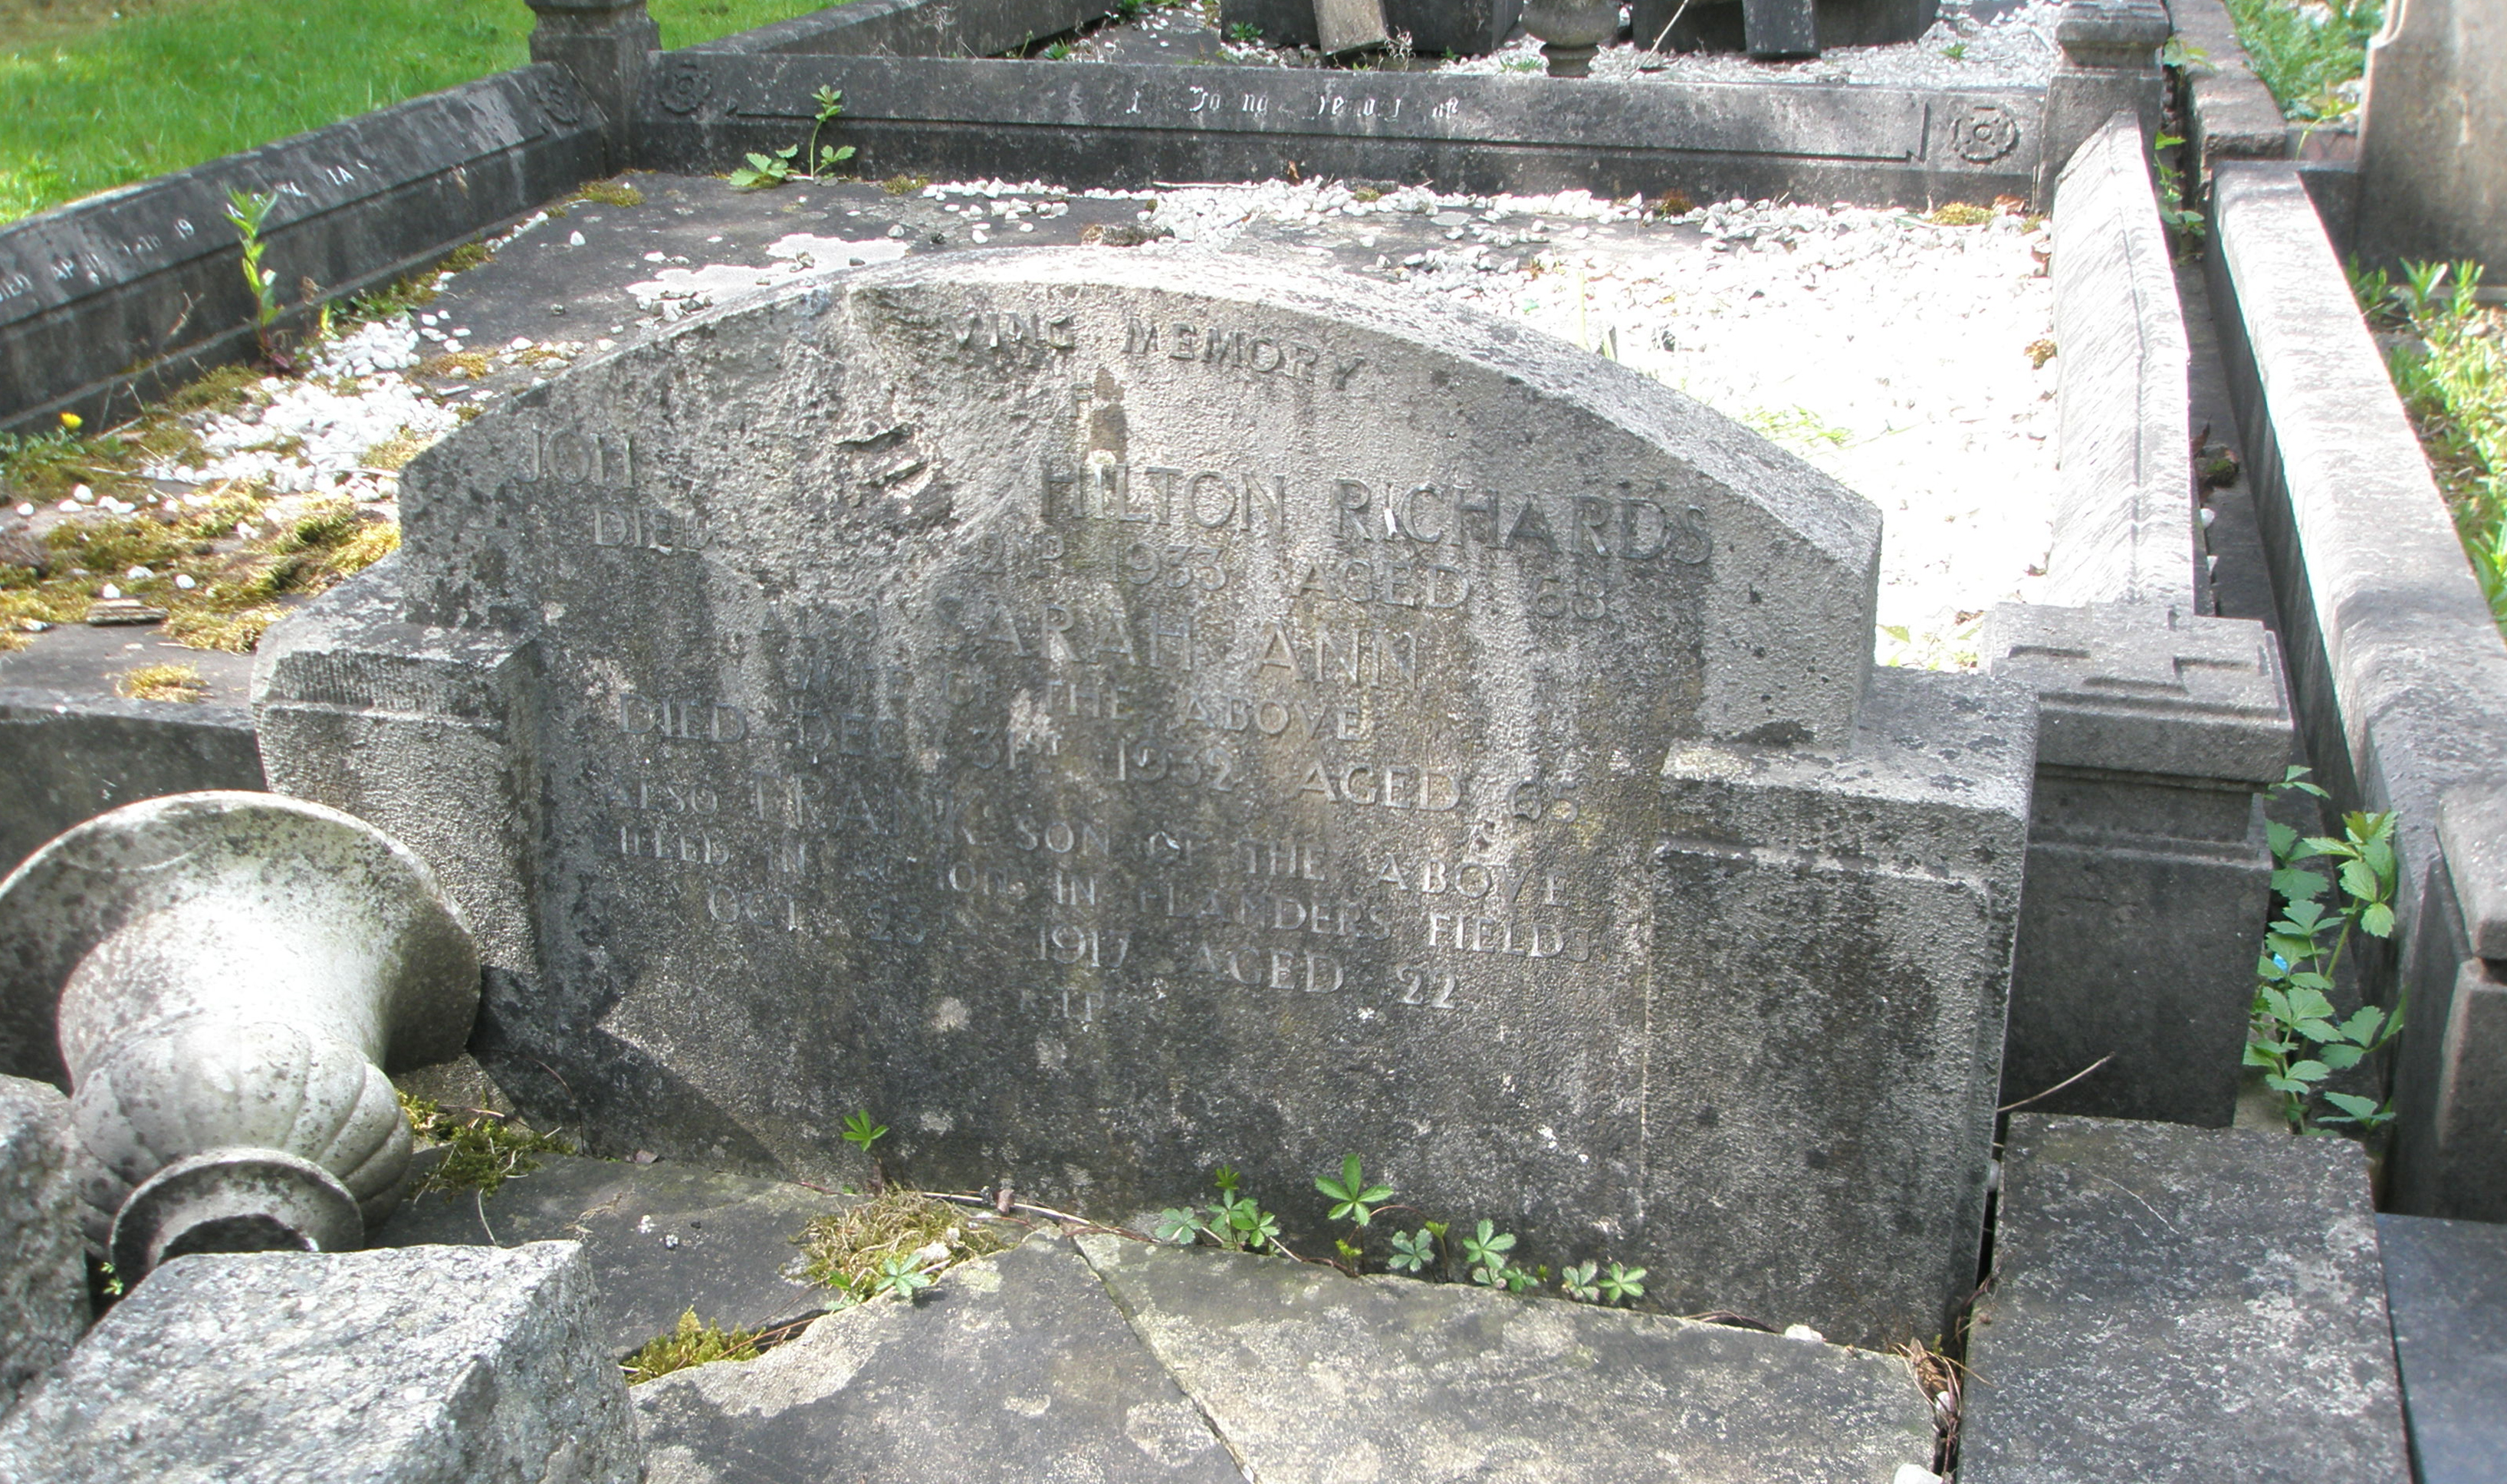 Private Frank Richards's headstone before restoration